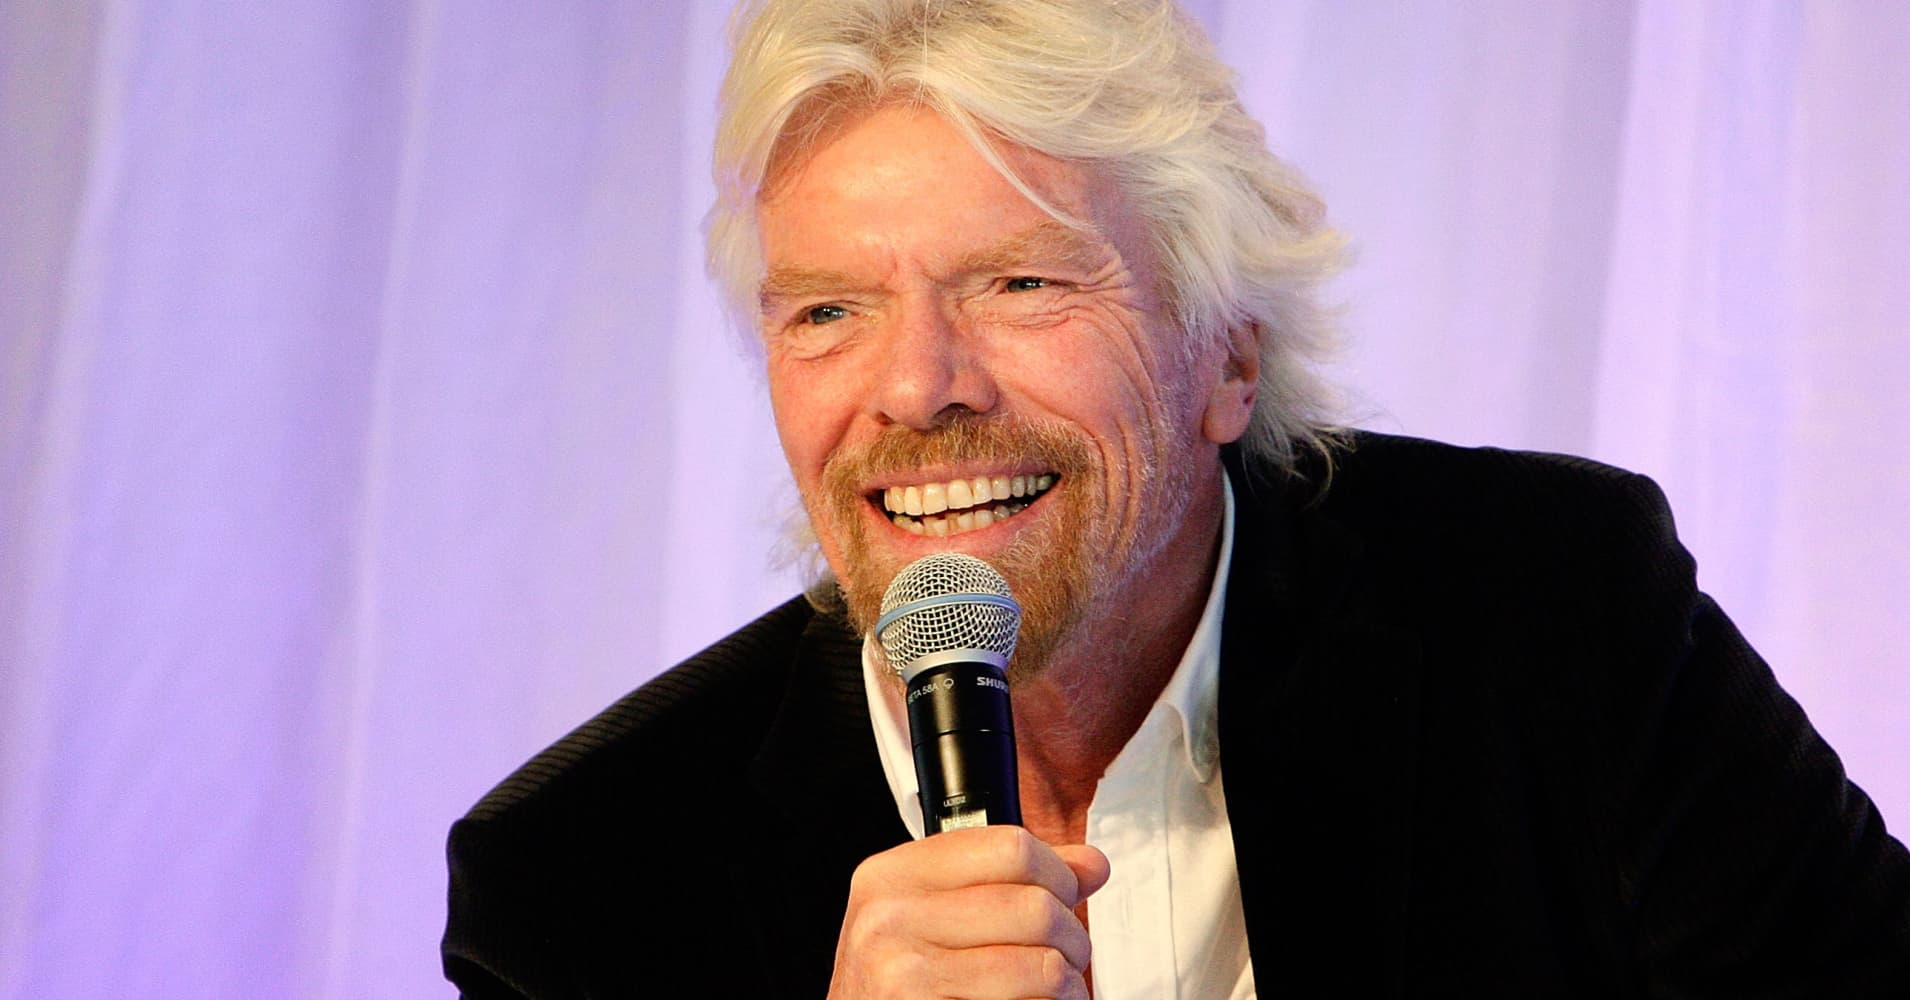 Richard Branson says Virgin Galactic will be in space in 'weeks not months'